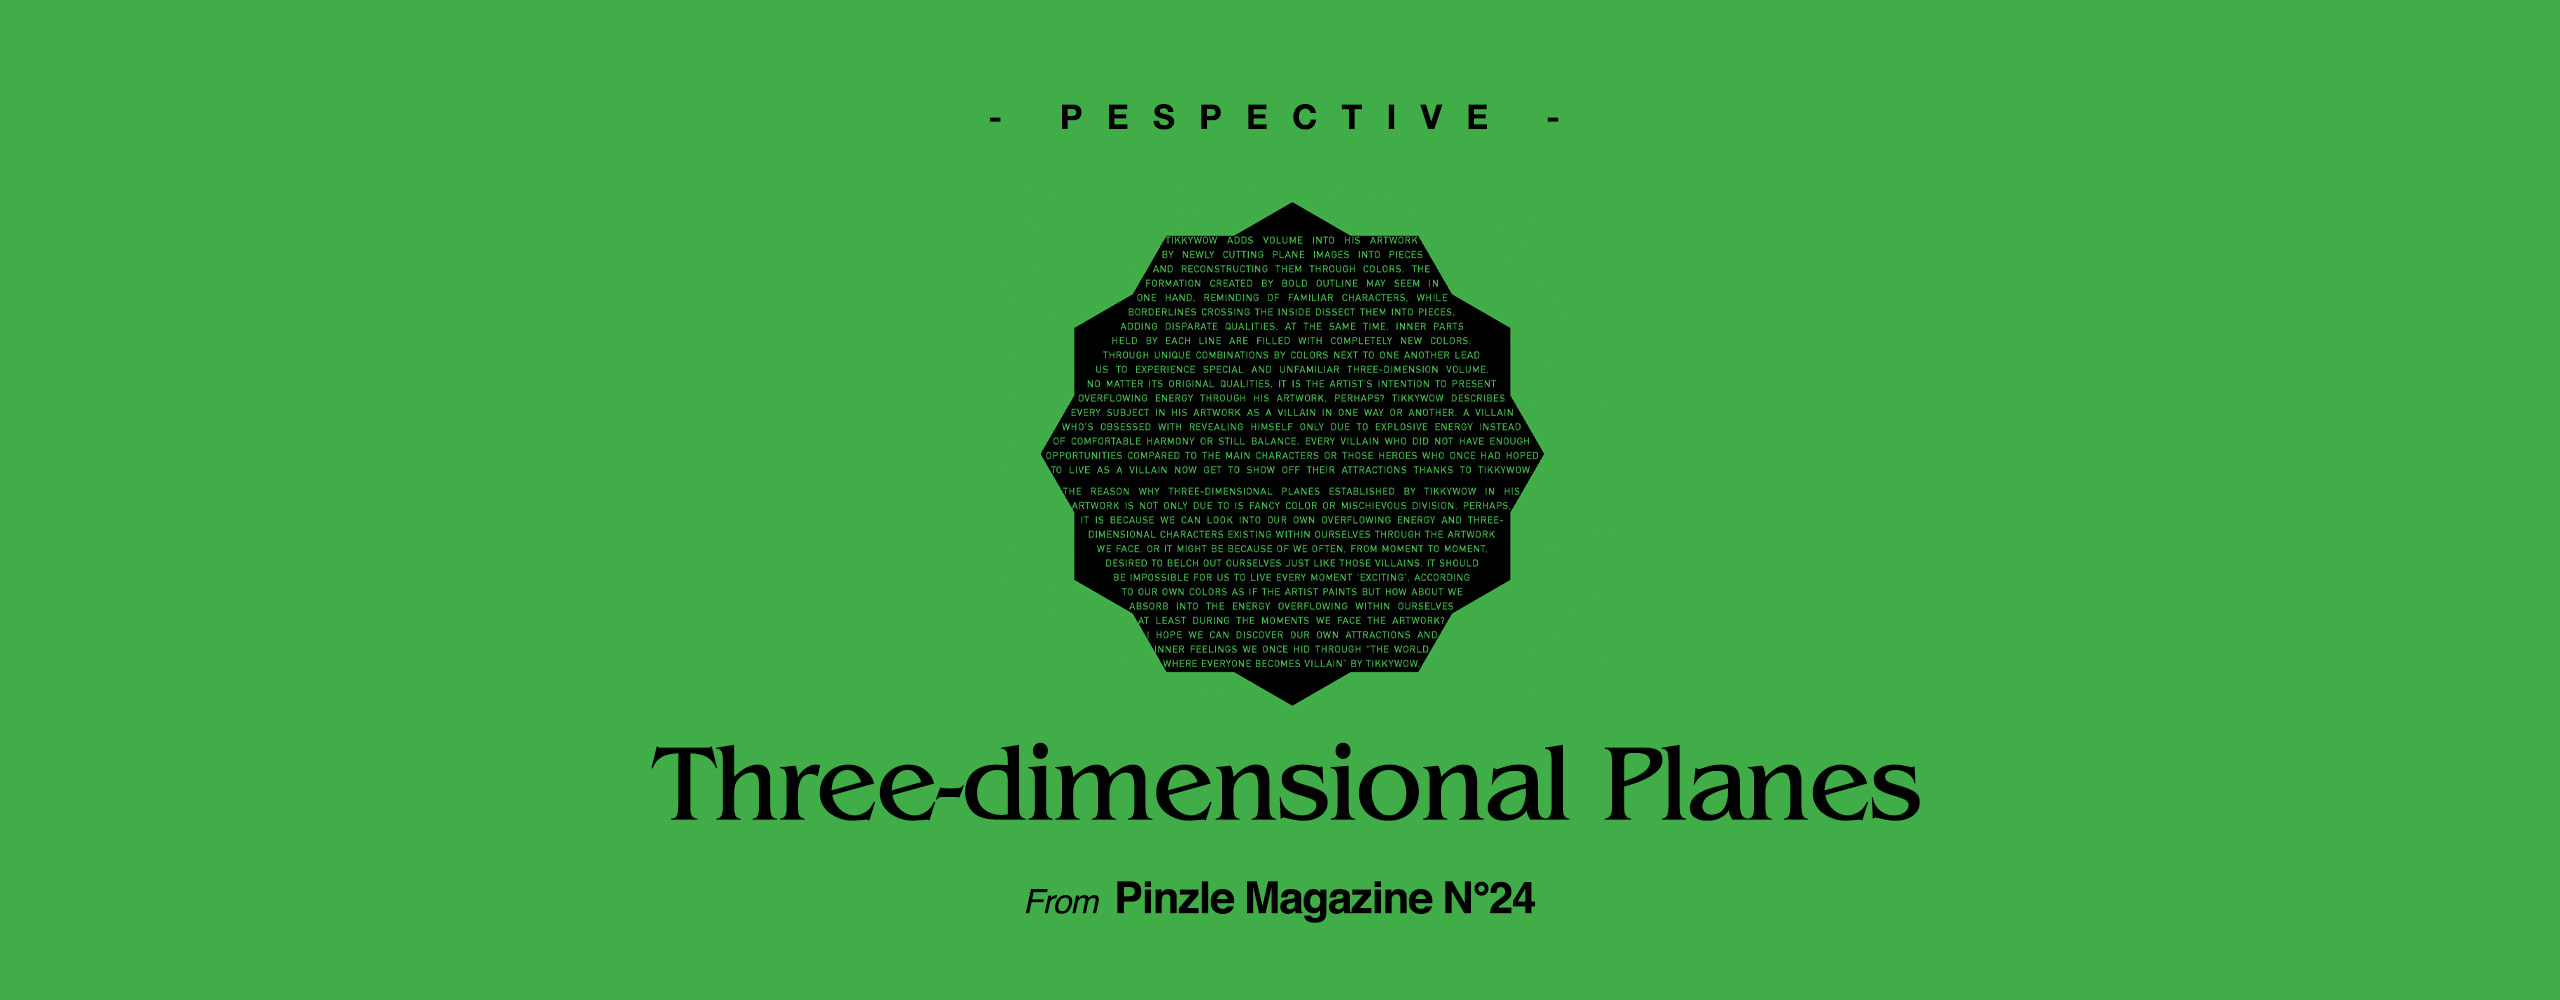 [PESPECTIVE] Three-dimensional Planes